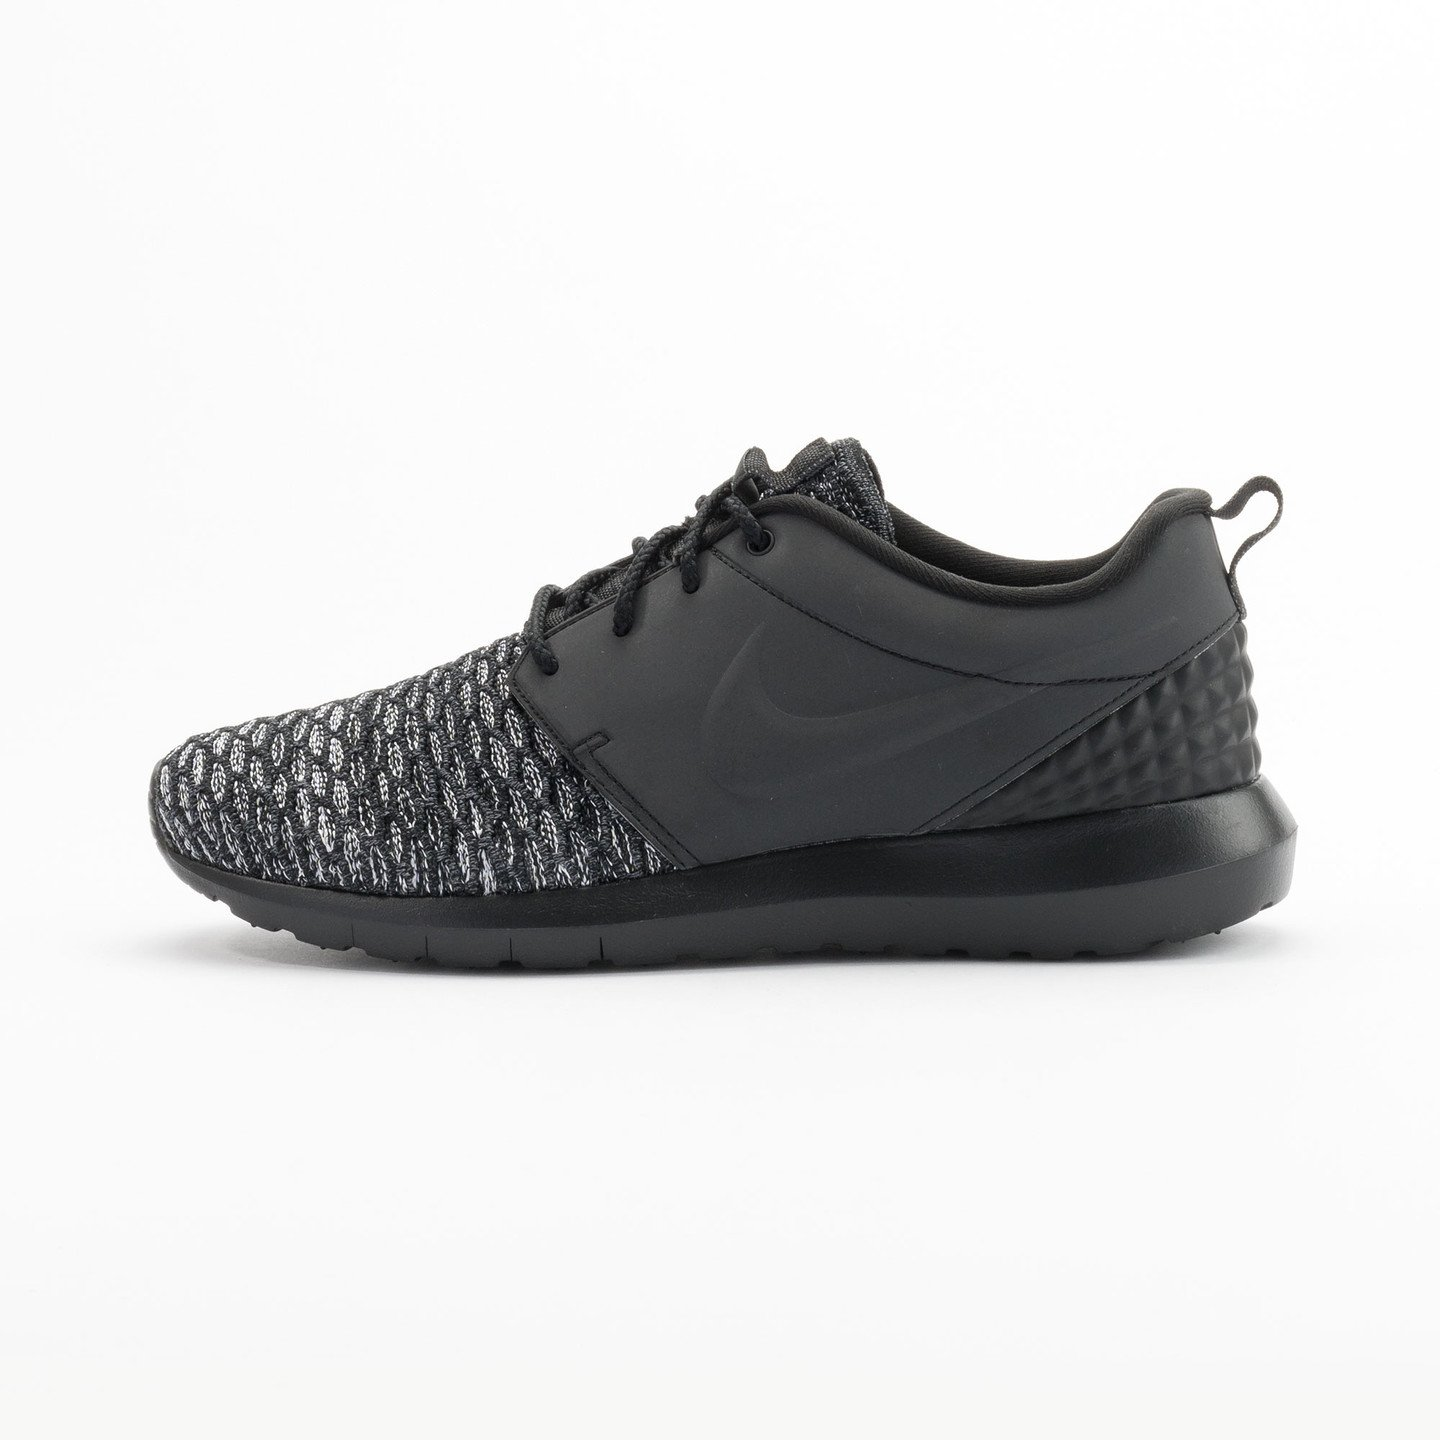 Nike Roshe NM Flyknit Premium Black / Black / Dark Grey / White 746825-002-42